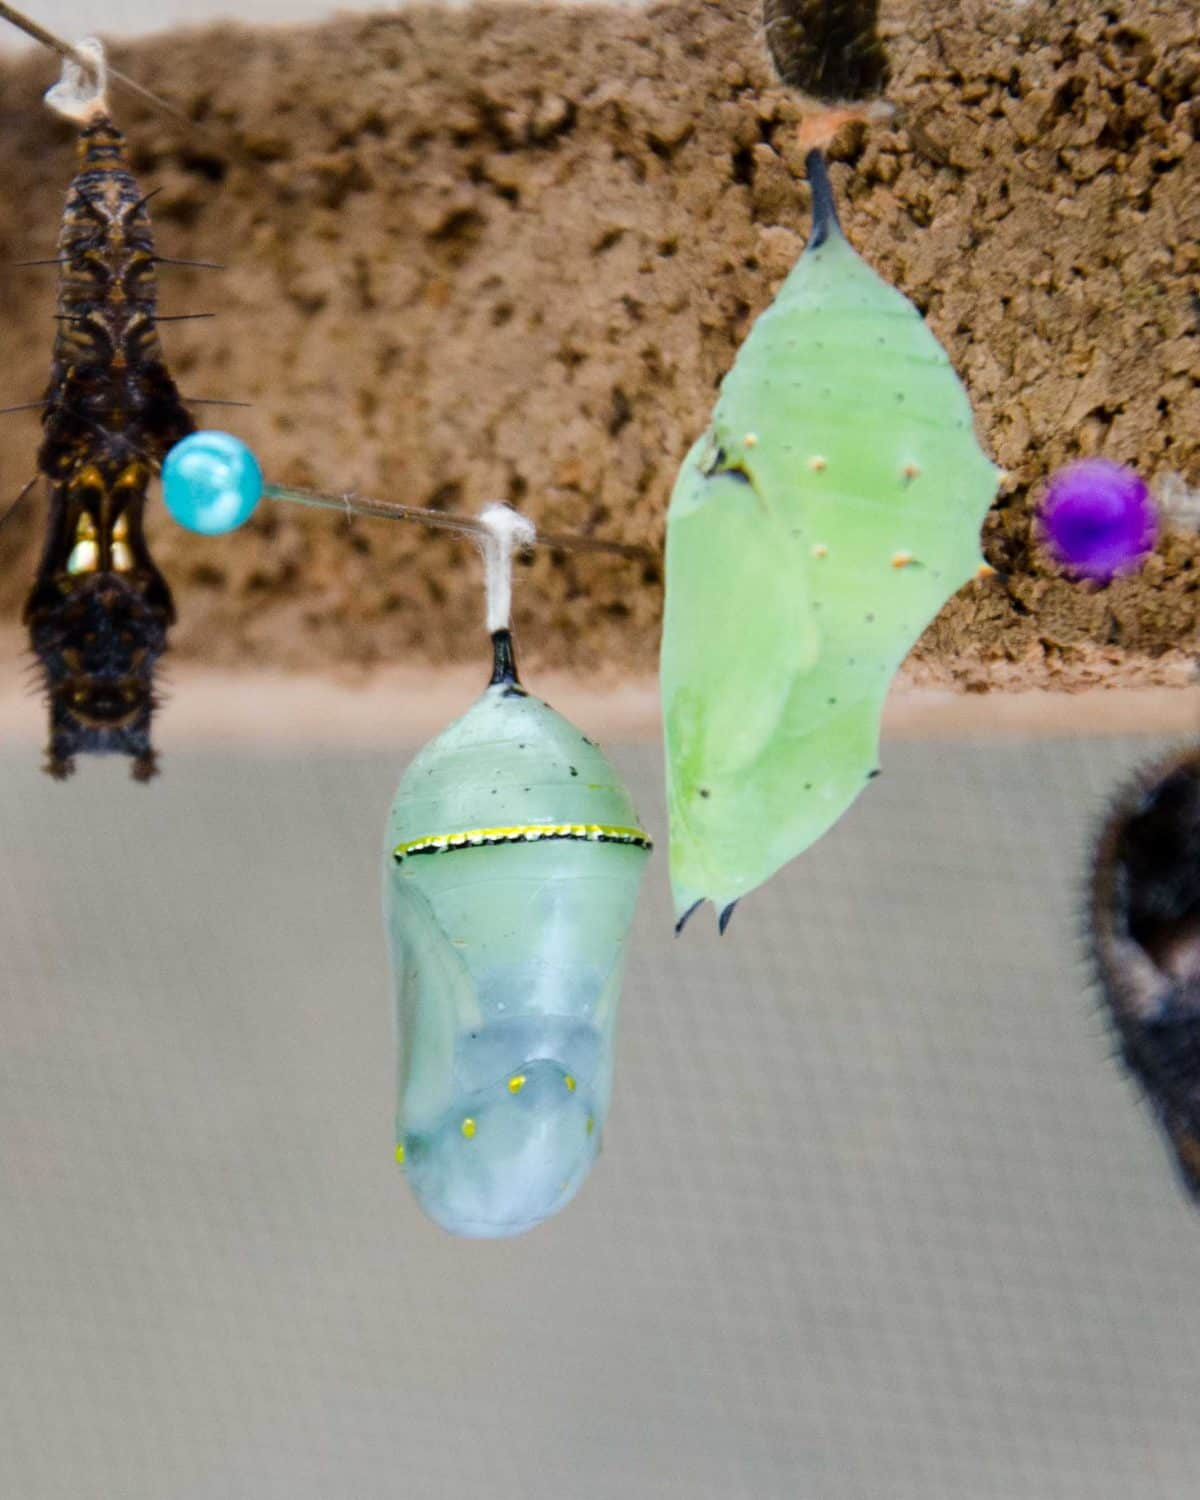 Jewel-like butterfly cocoons at the Mariposario (butterfly farm), Mindo, Ecuador | © Angela Drake